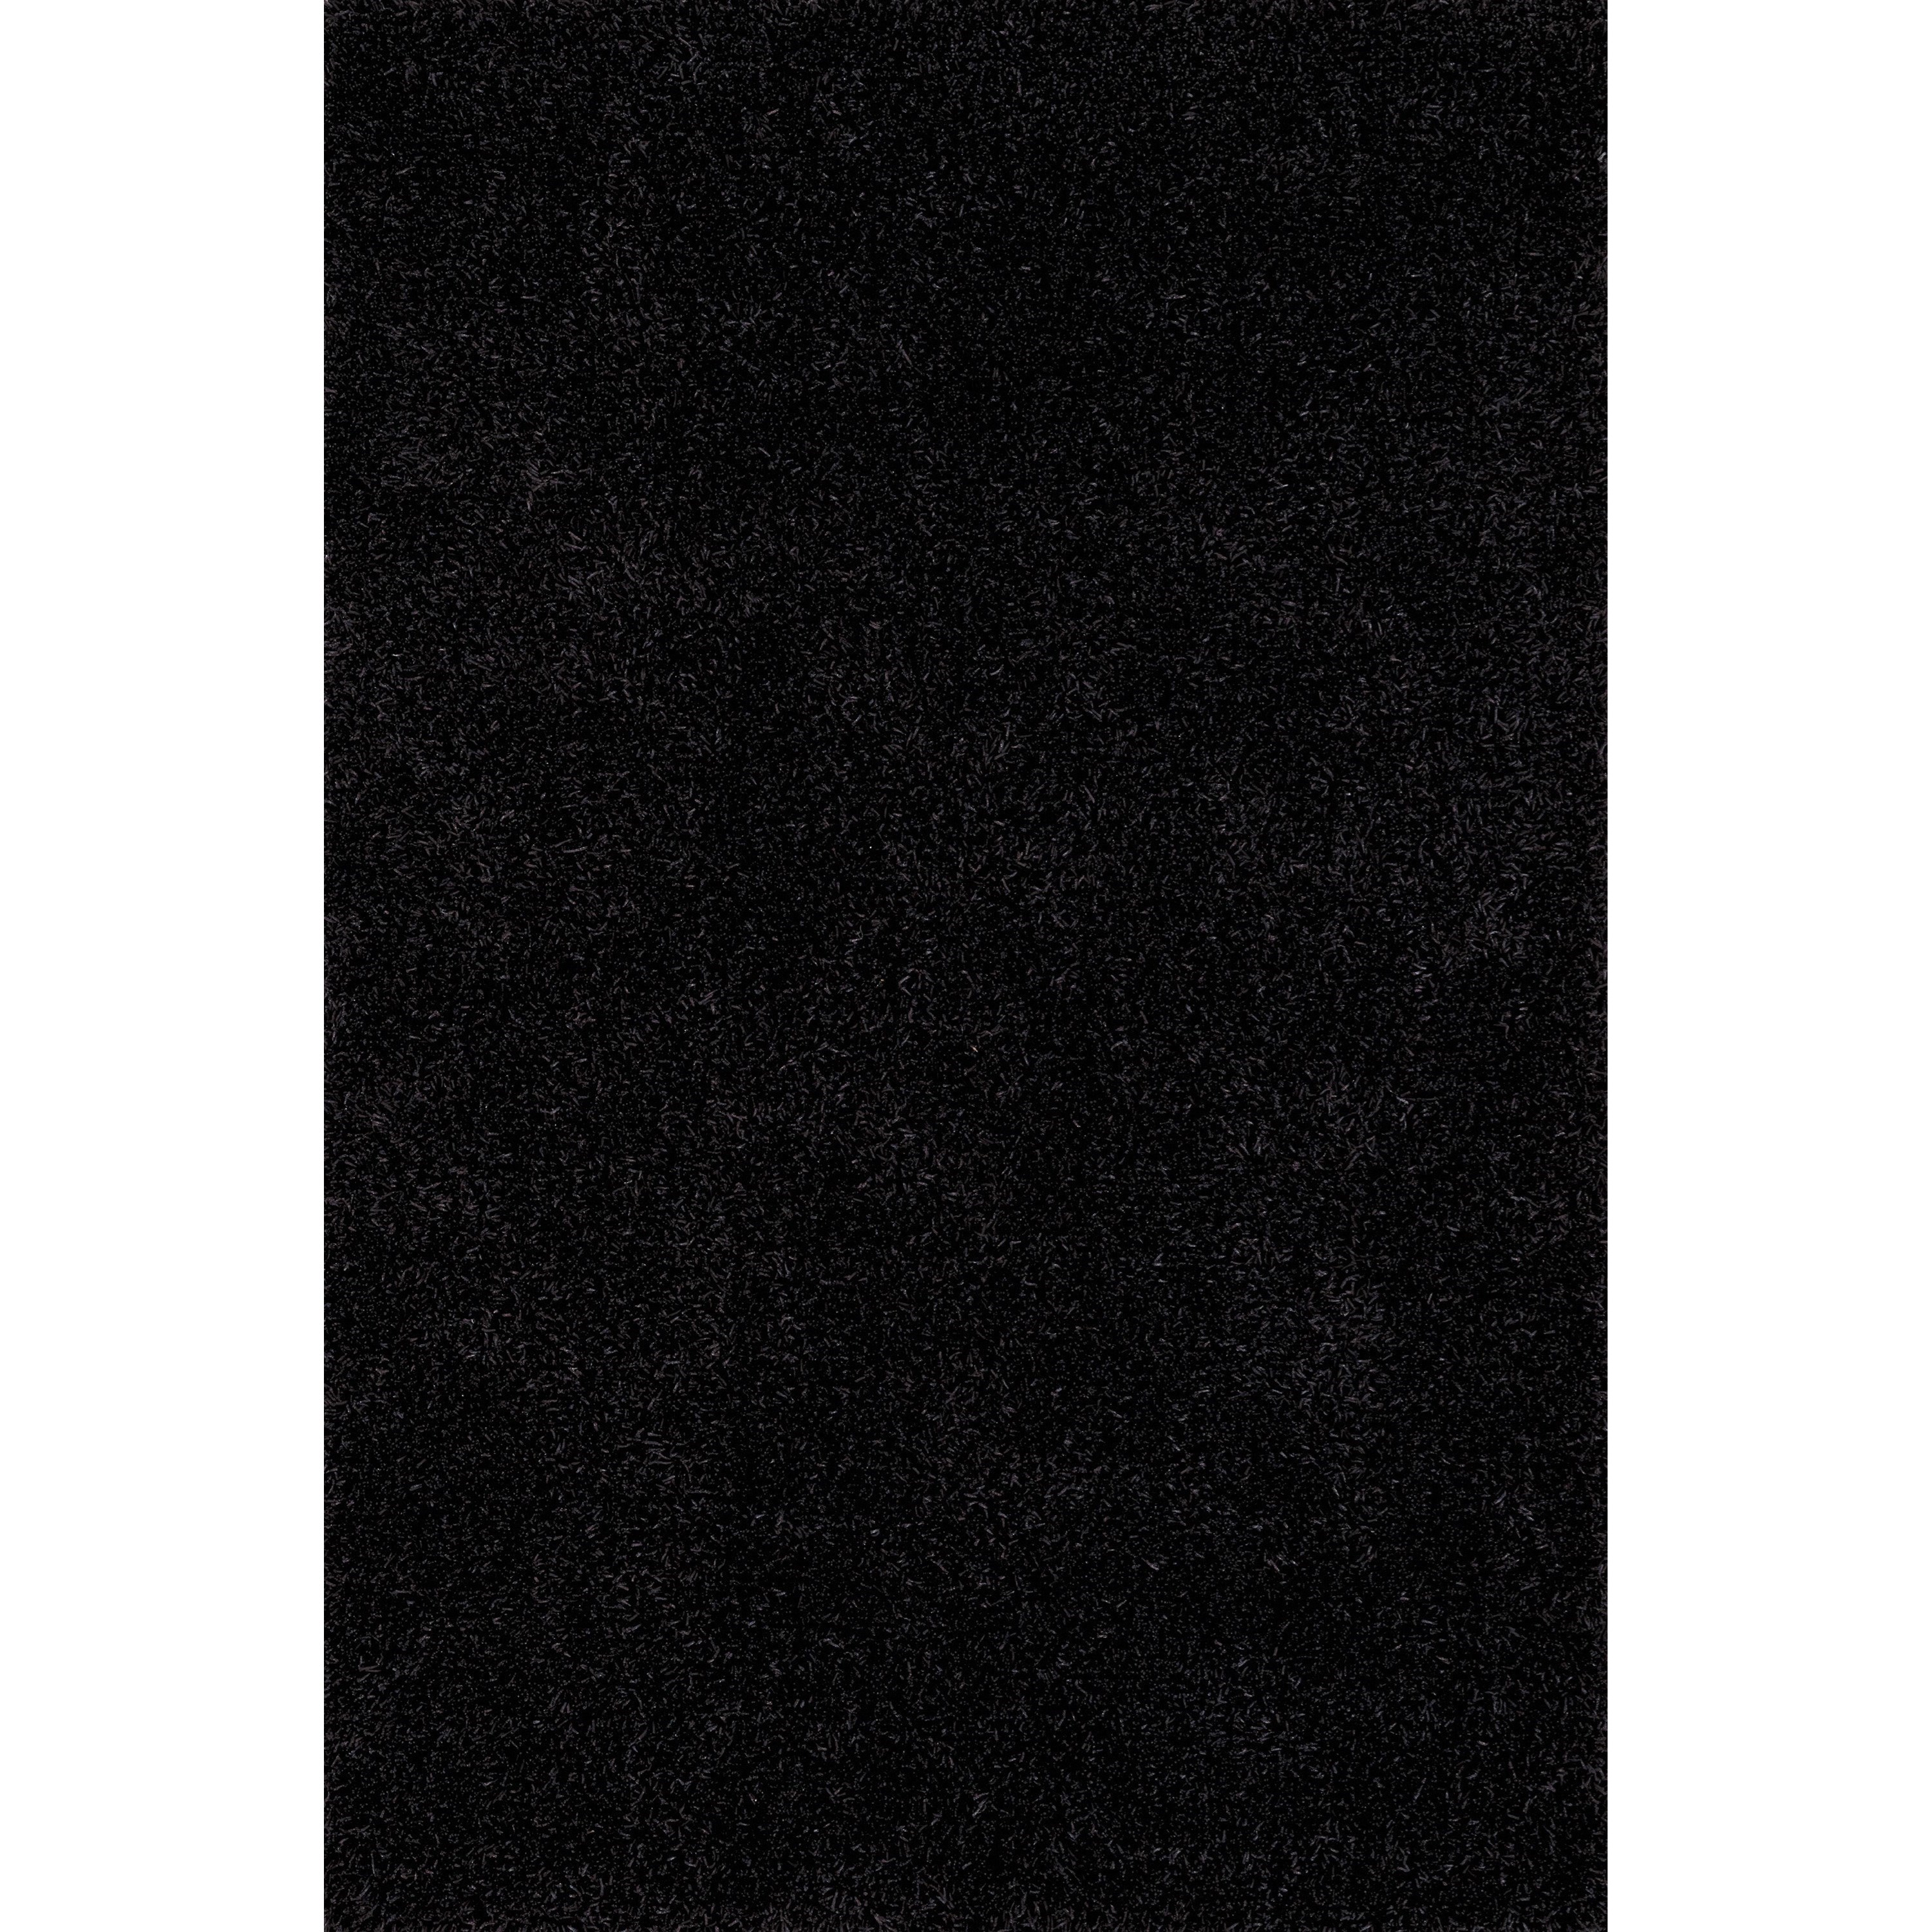 Dalyn Illusions Black 9'X13' Rug - Item Number: IL69BK9X13